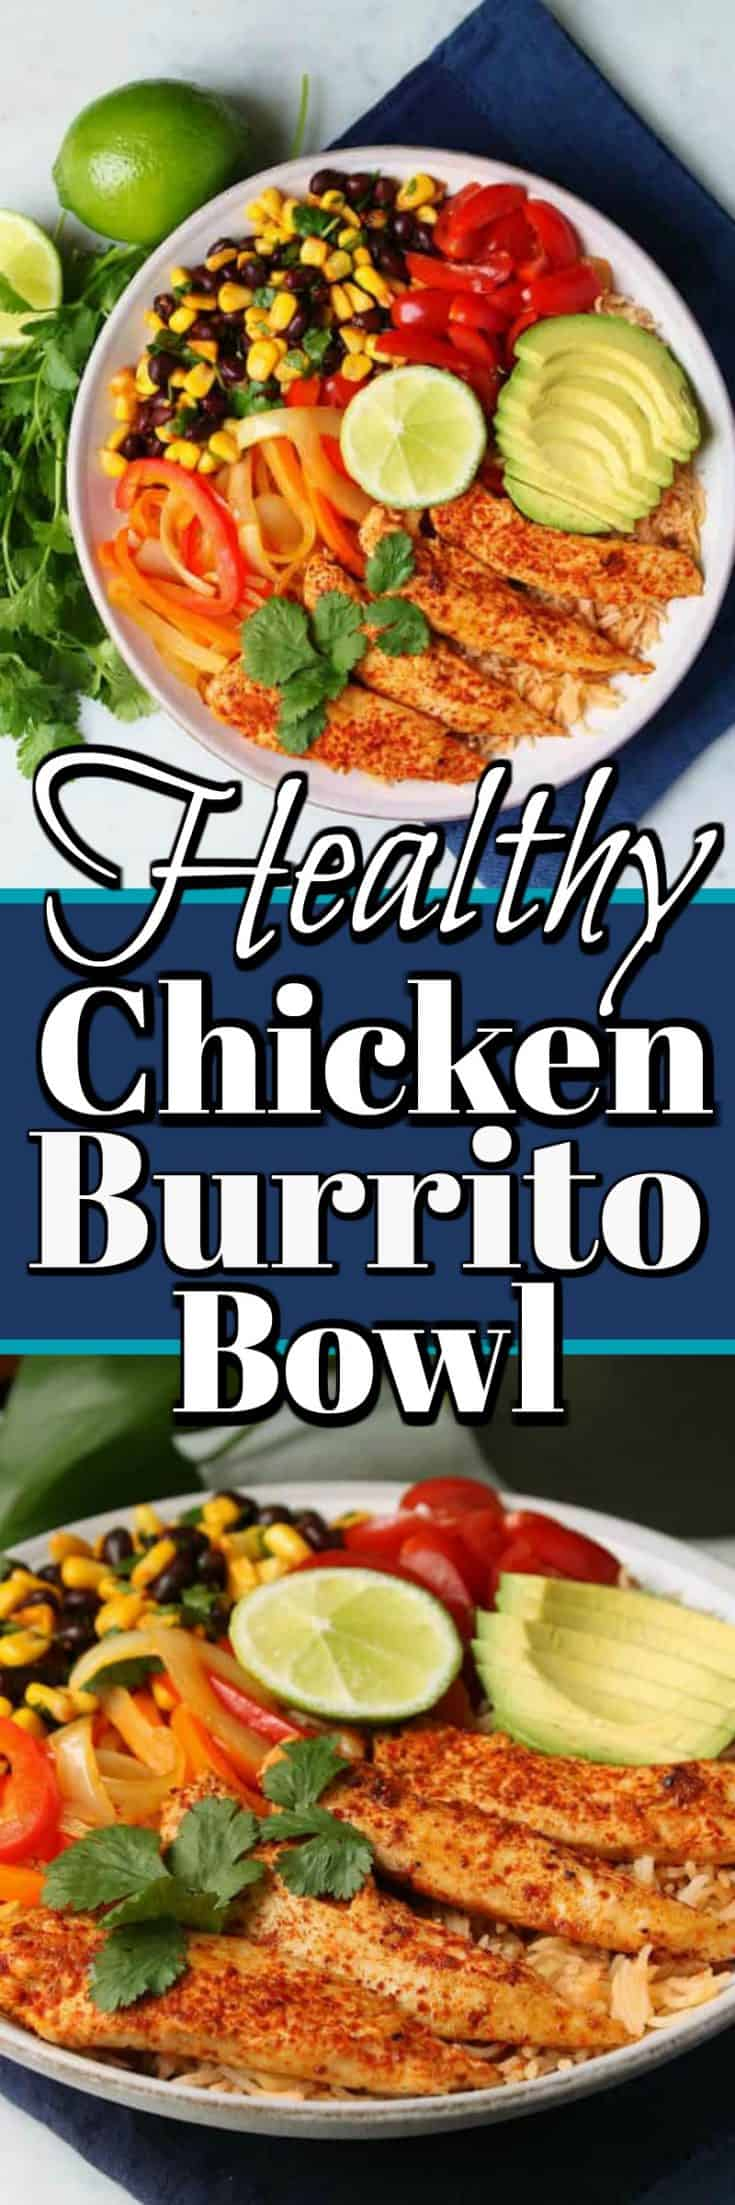 Healthy Chicken Burrito Bowl is full of fresh ingredients and exploding with flavor! Chicken breast tenders and tasty vegetables make a great meal prep recipe rotation! #burritobowl #chickne #healthy